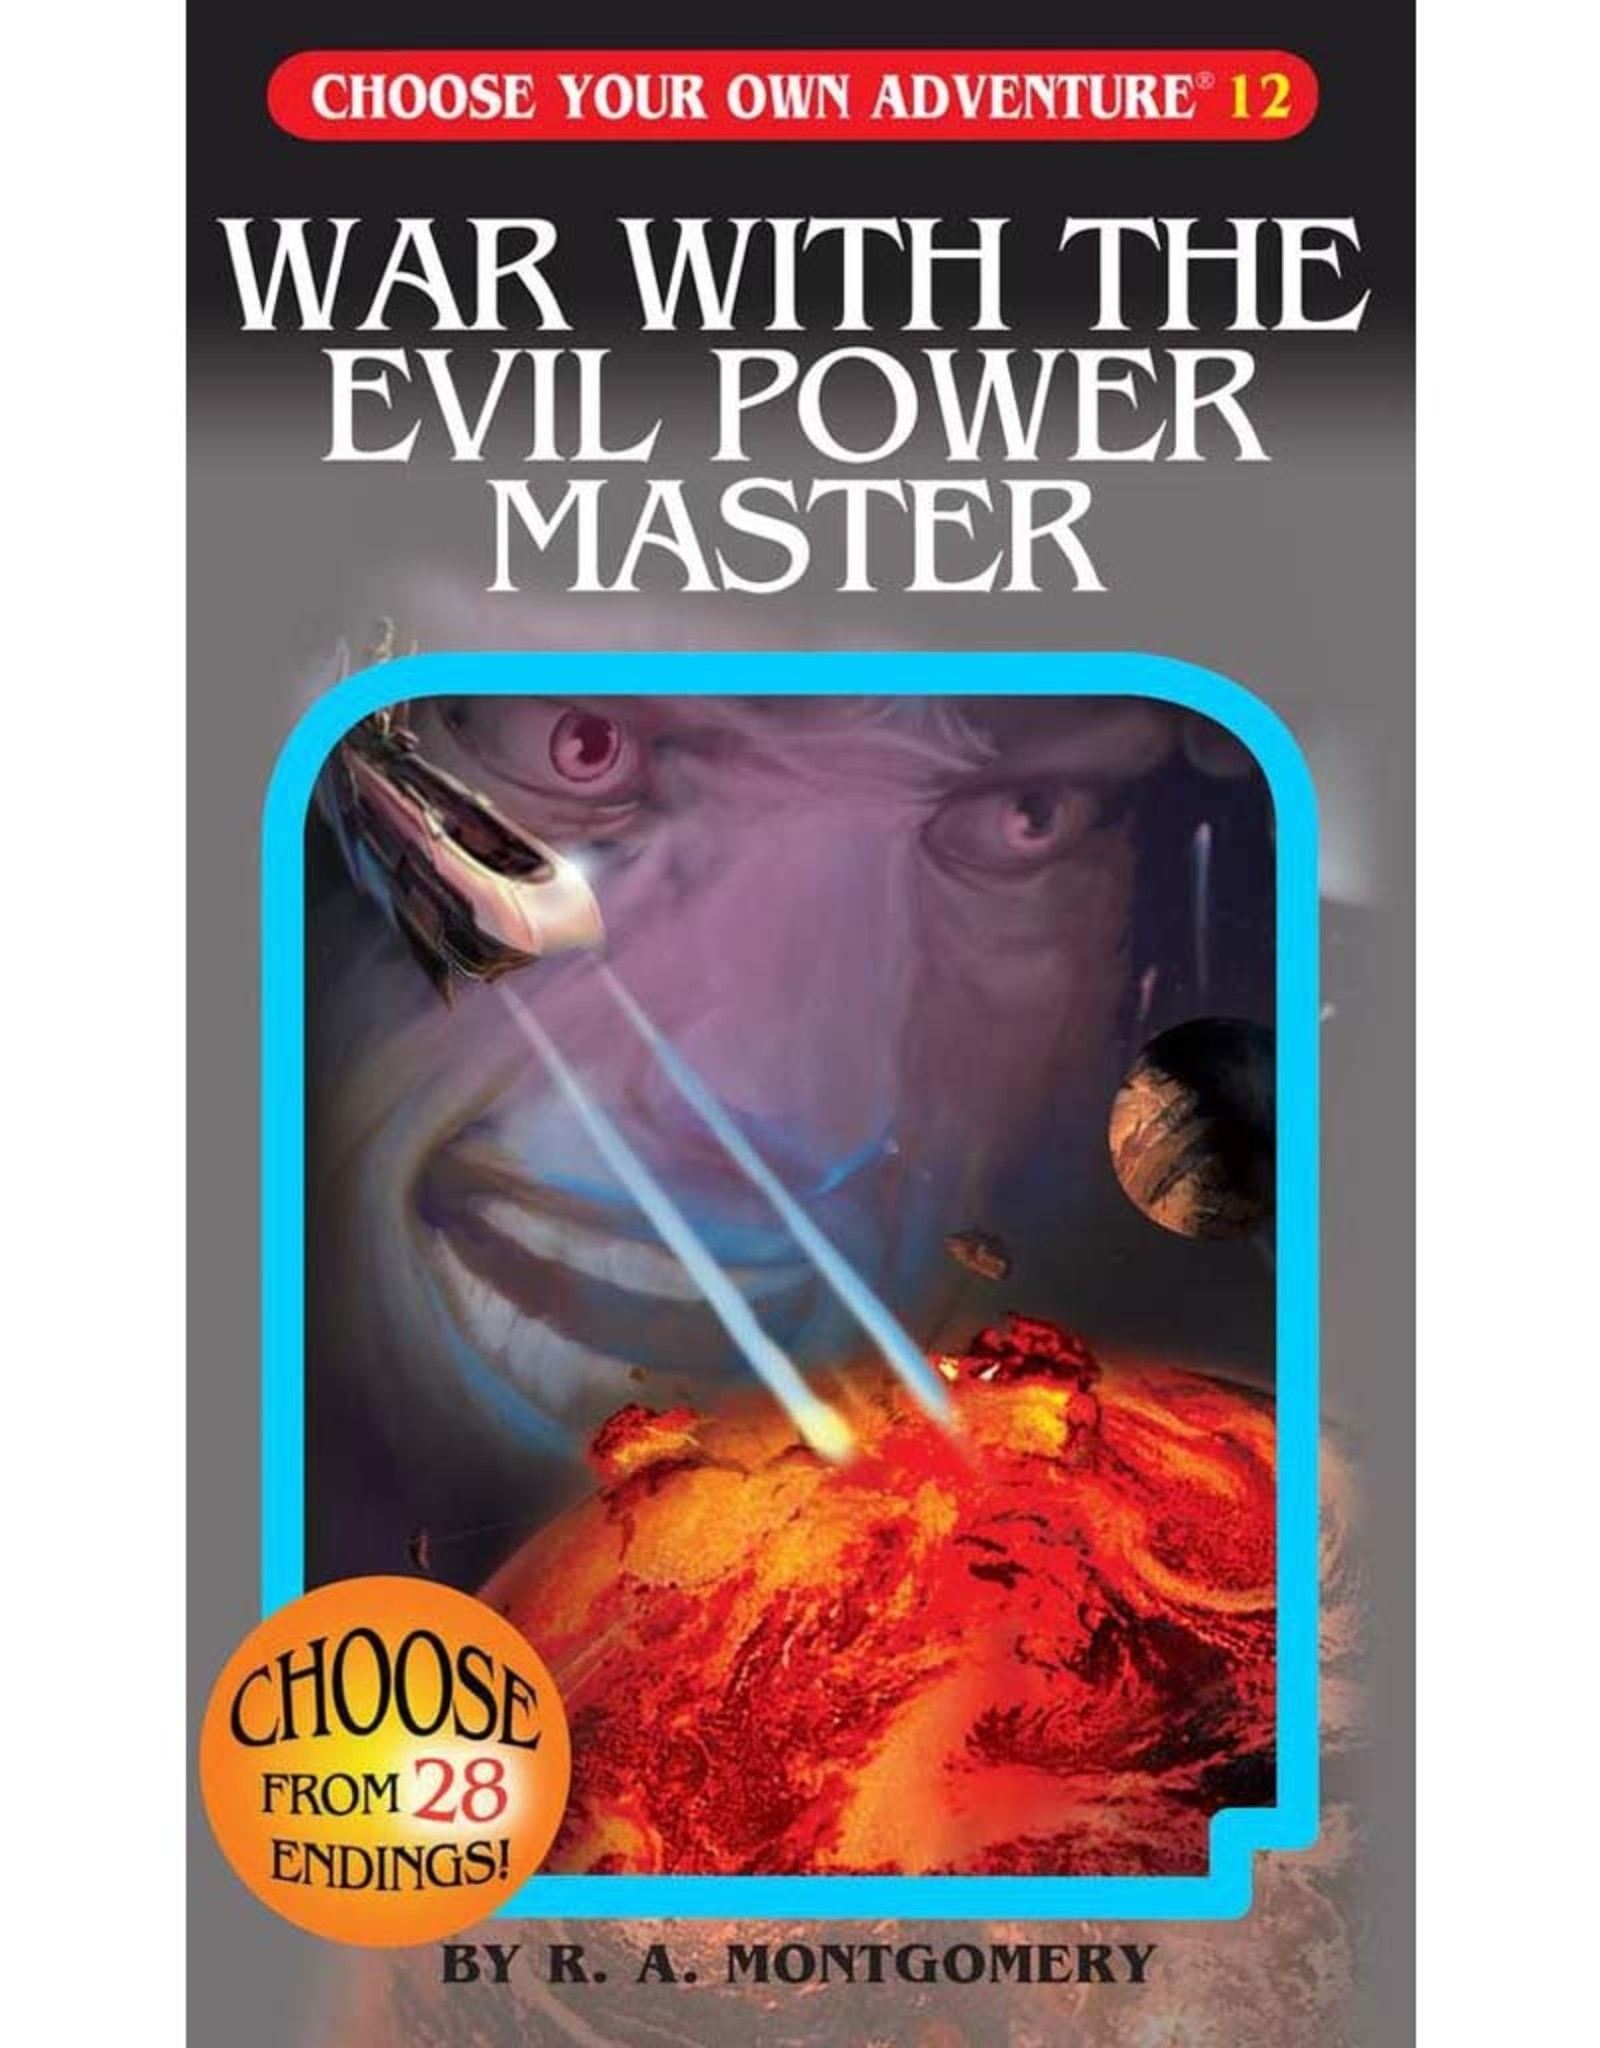 ChooseCo CYOA #12 War With The Evil Power Master